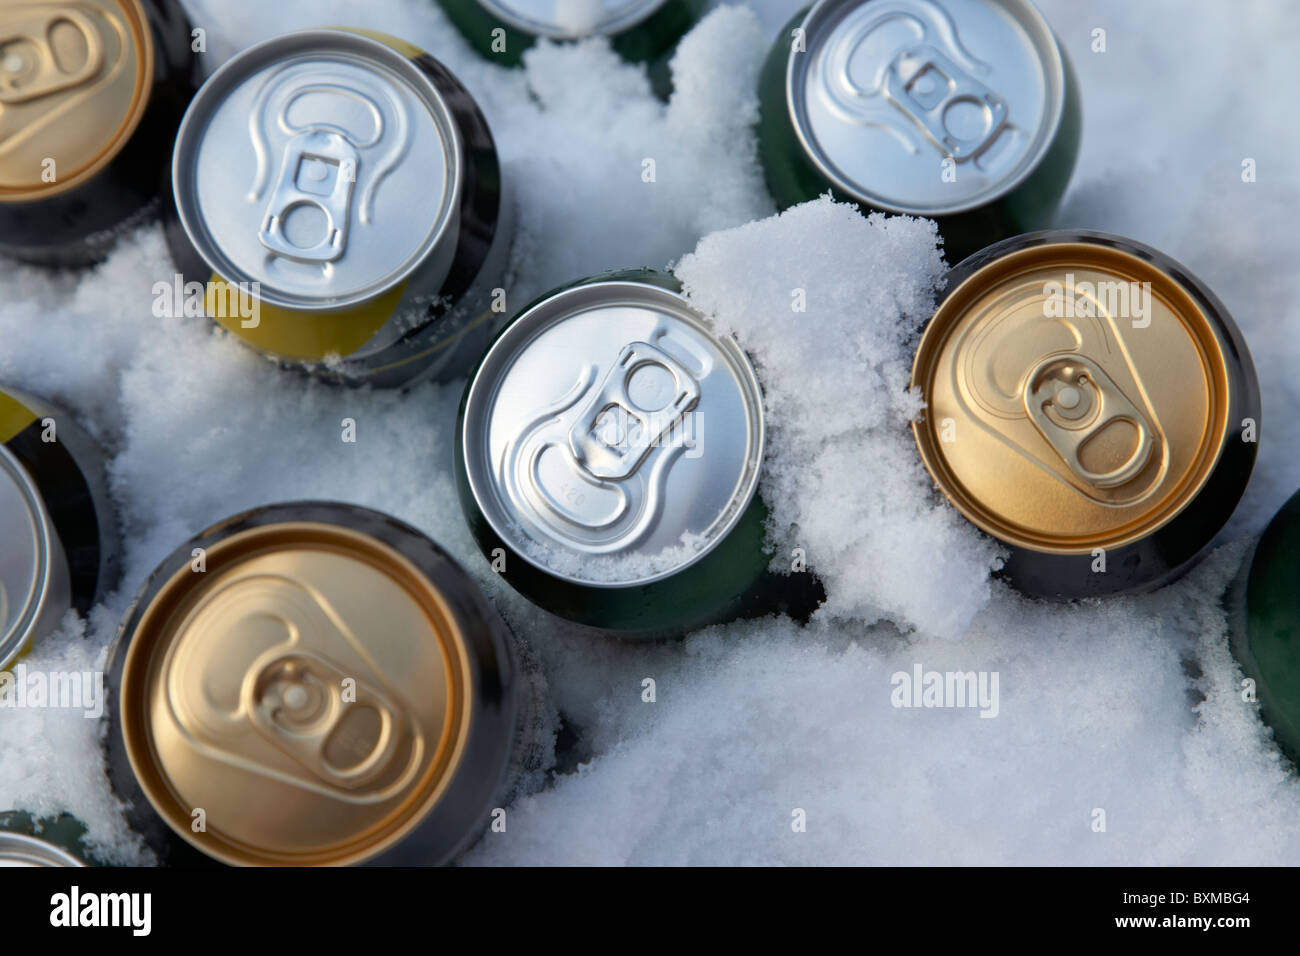 beer and alcohol cans buried in snow to keep them cool outdoors during winter - Stock Image